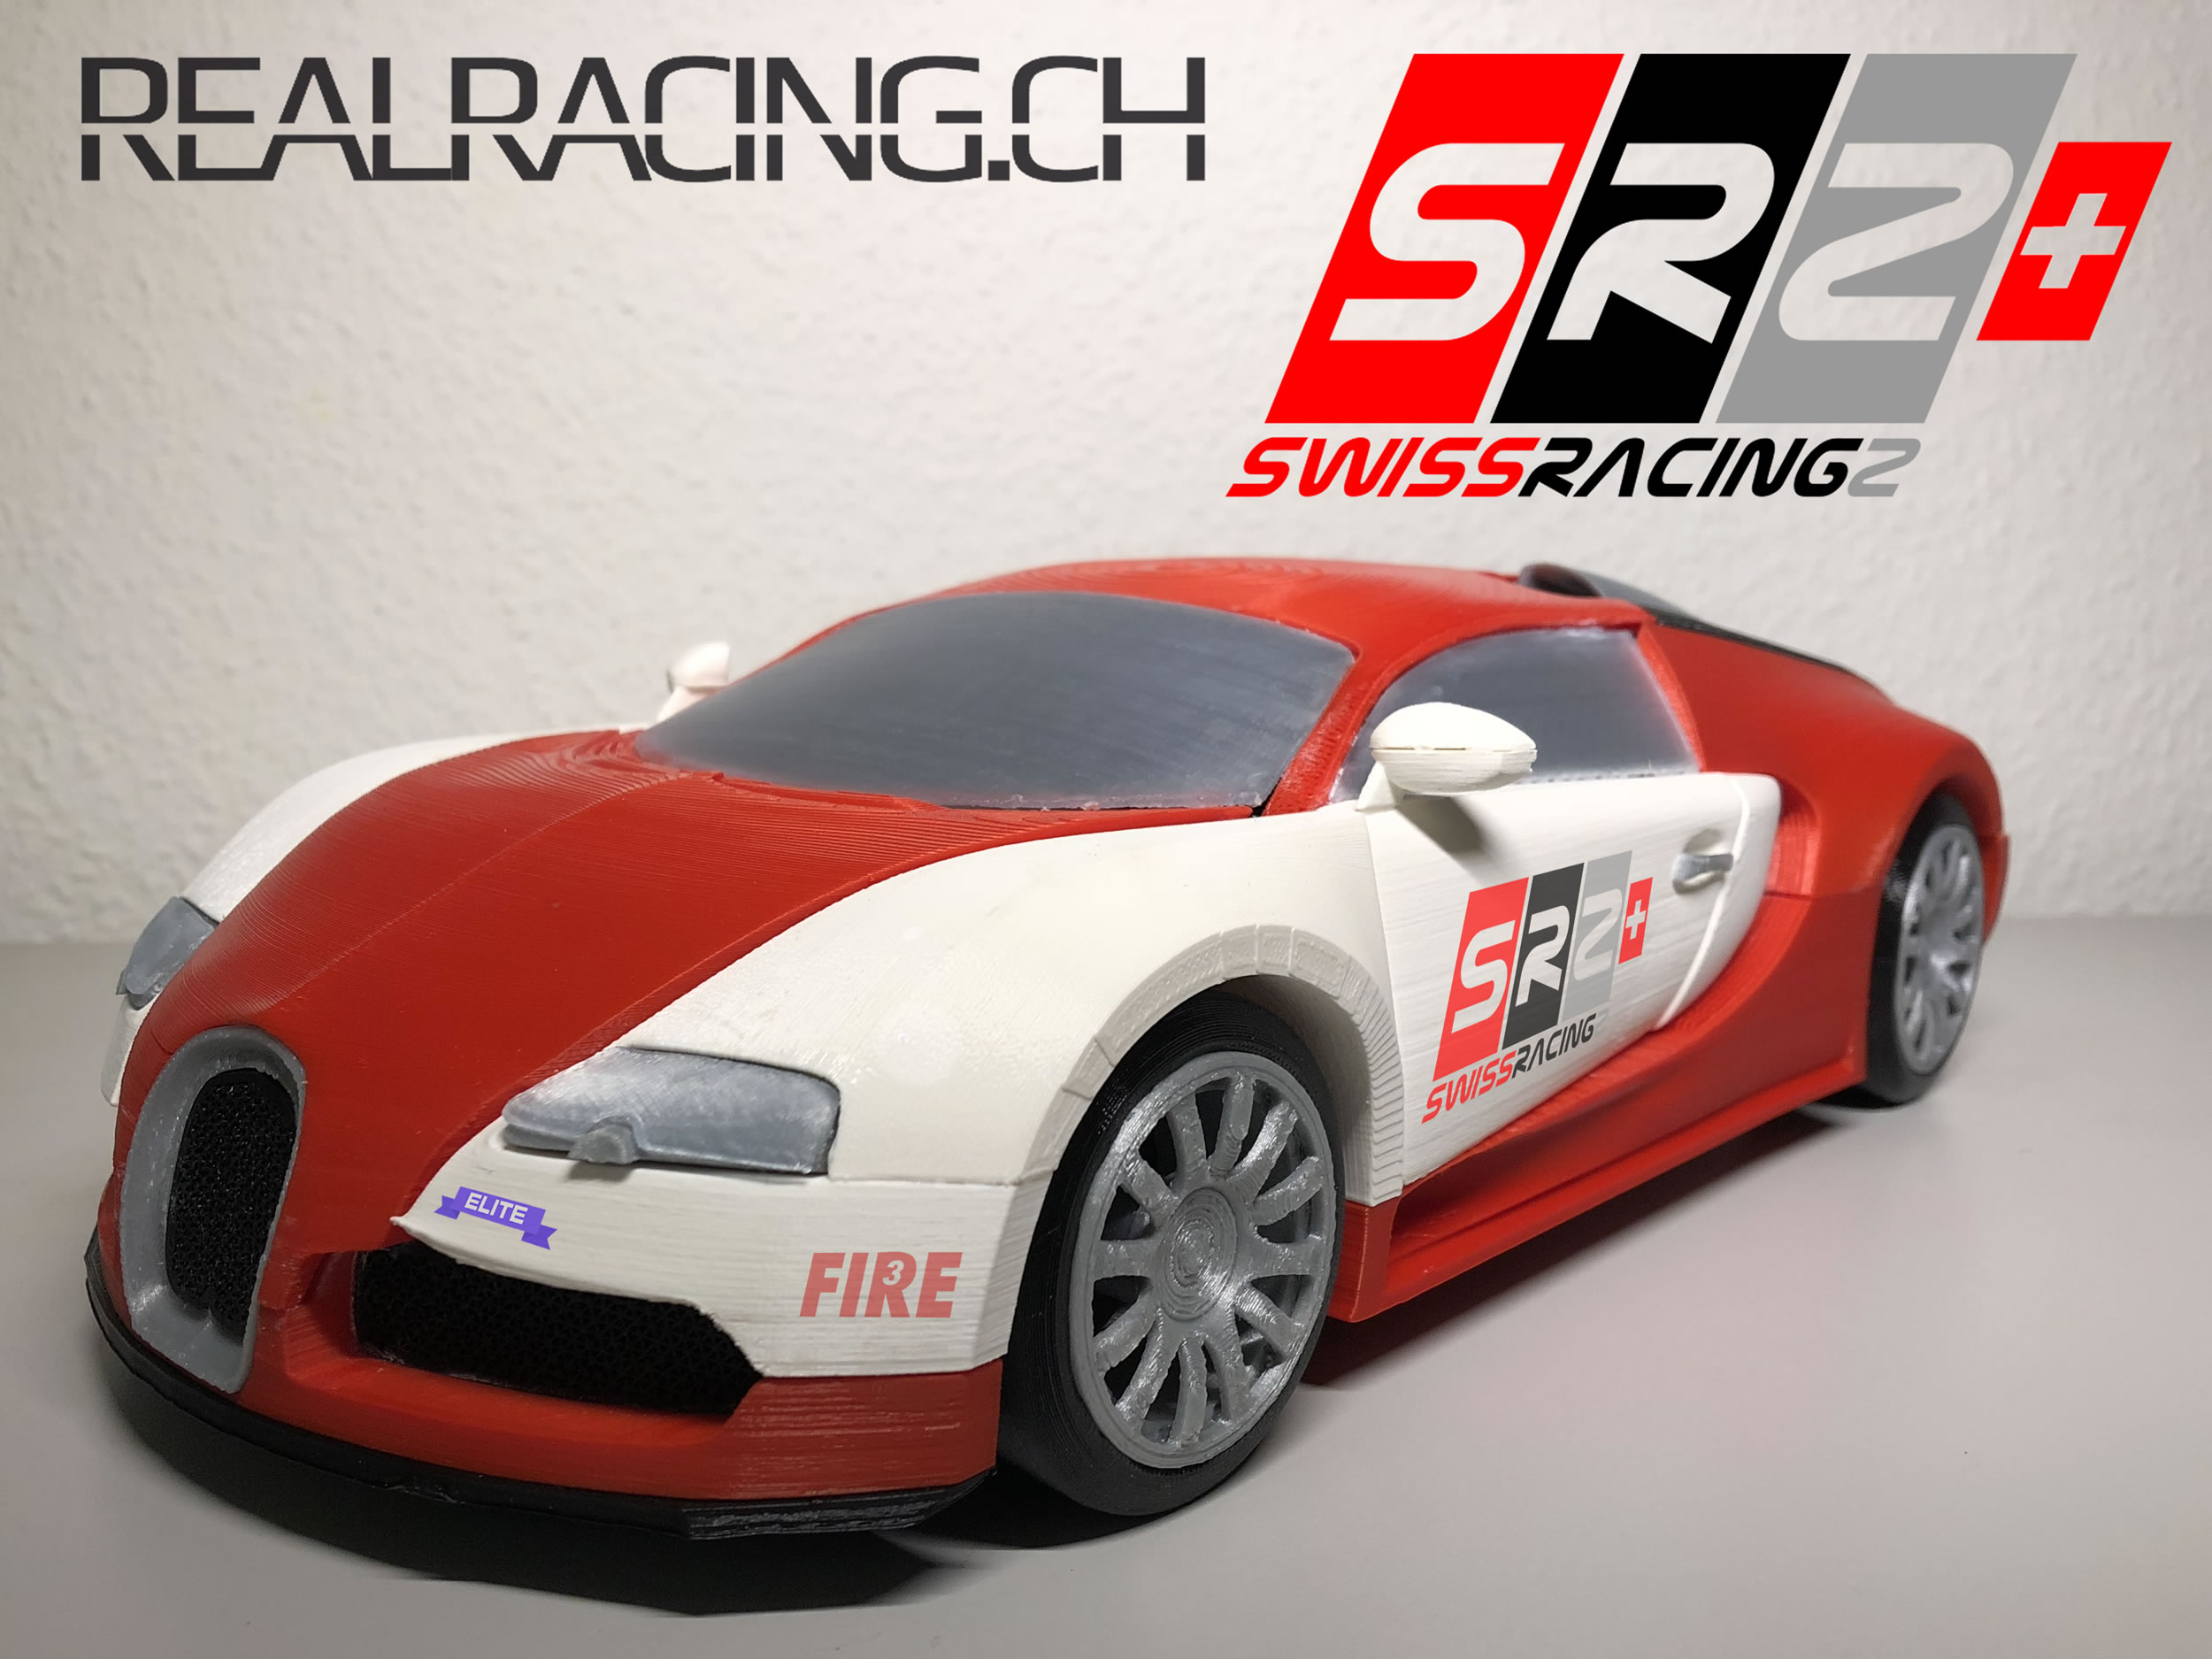 Swiss Racing 2 Teamwagen 2018/19